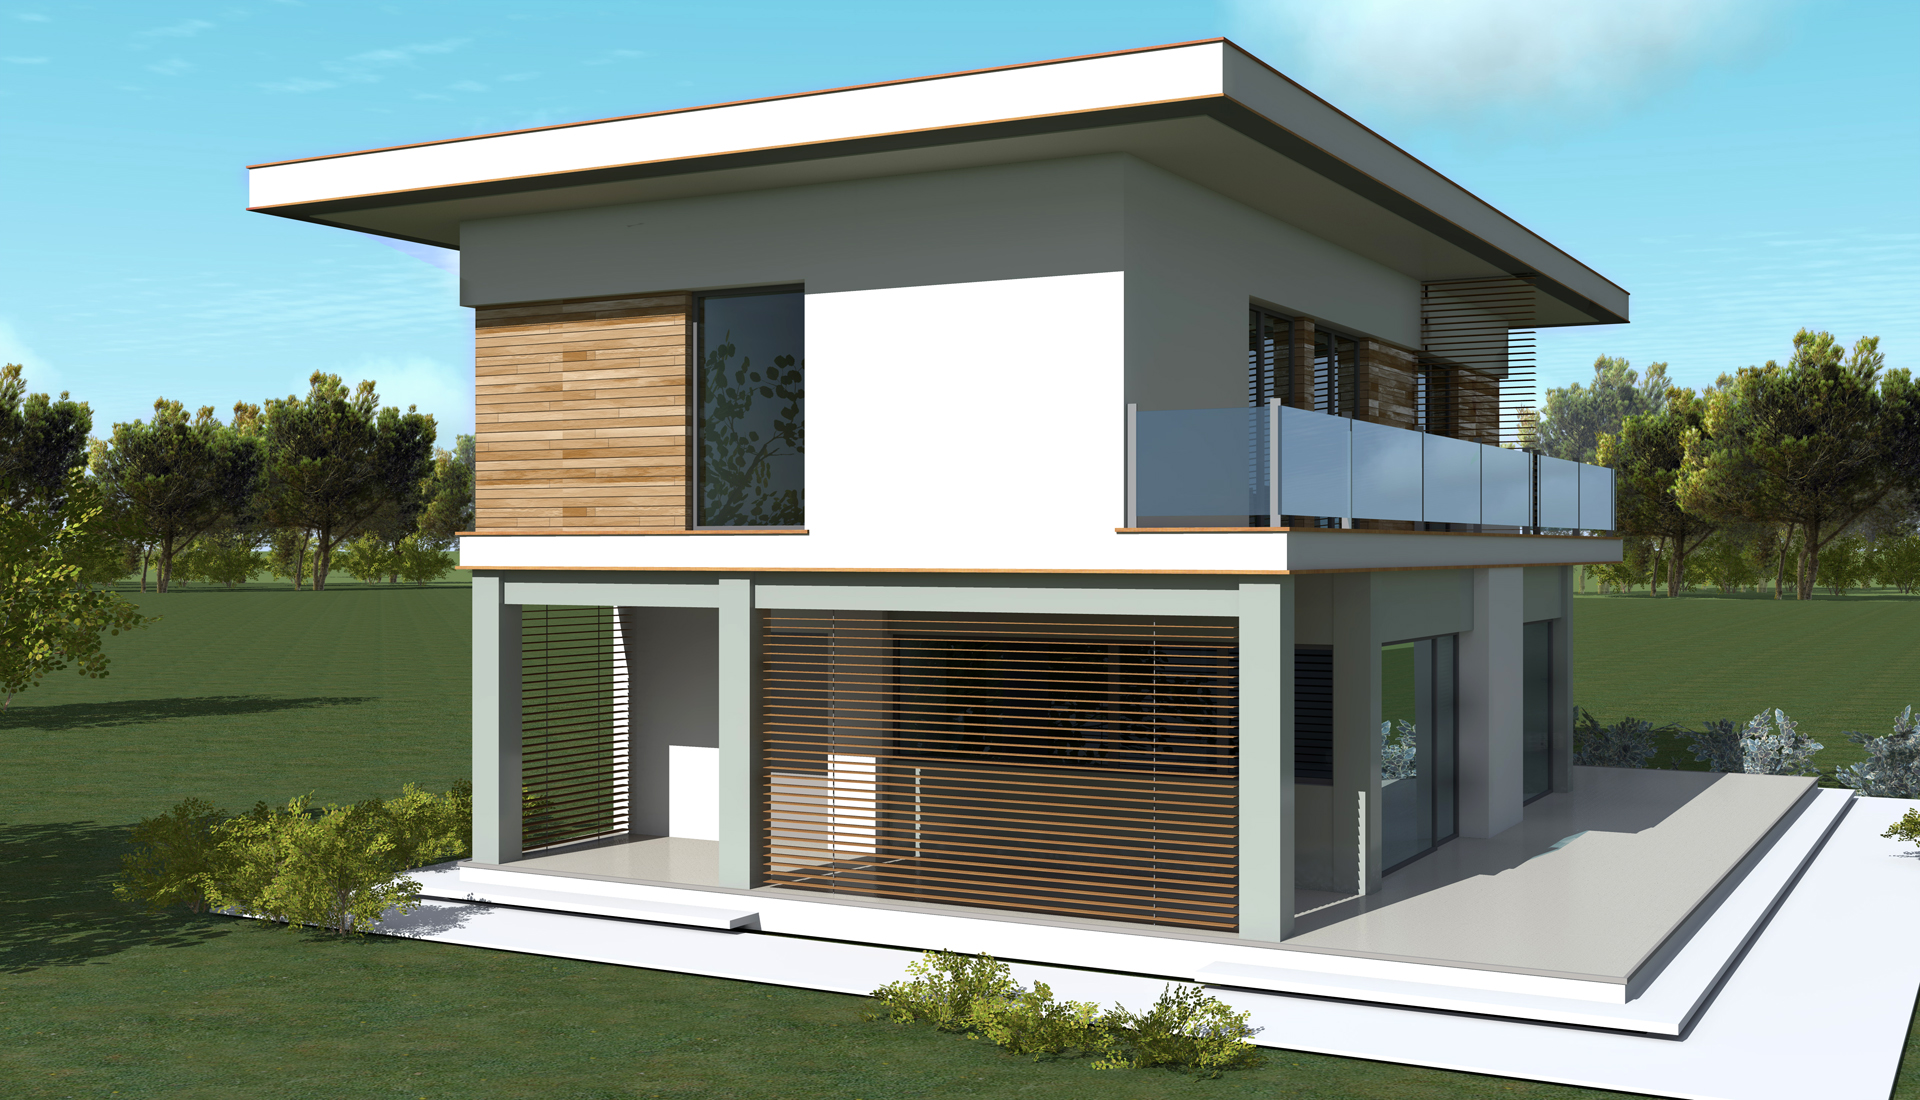 Casa moderna plan is 10 150m2 for Casas modernas de 95 m2